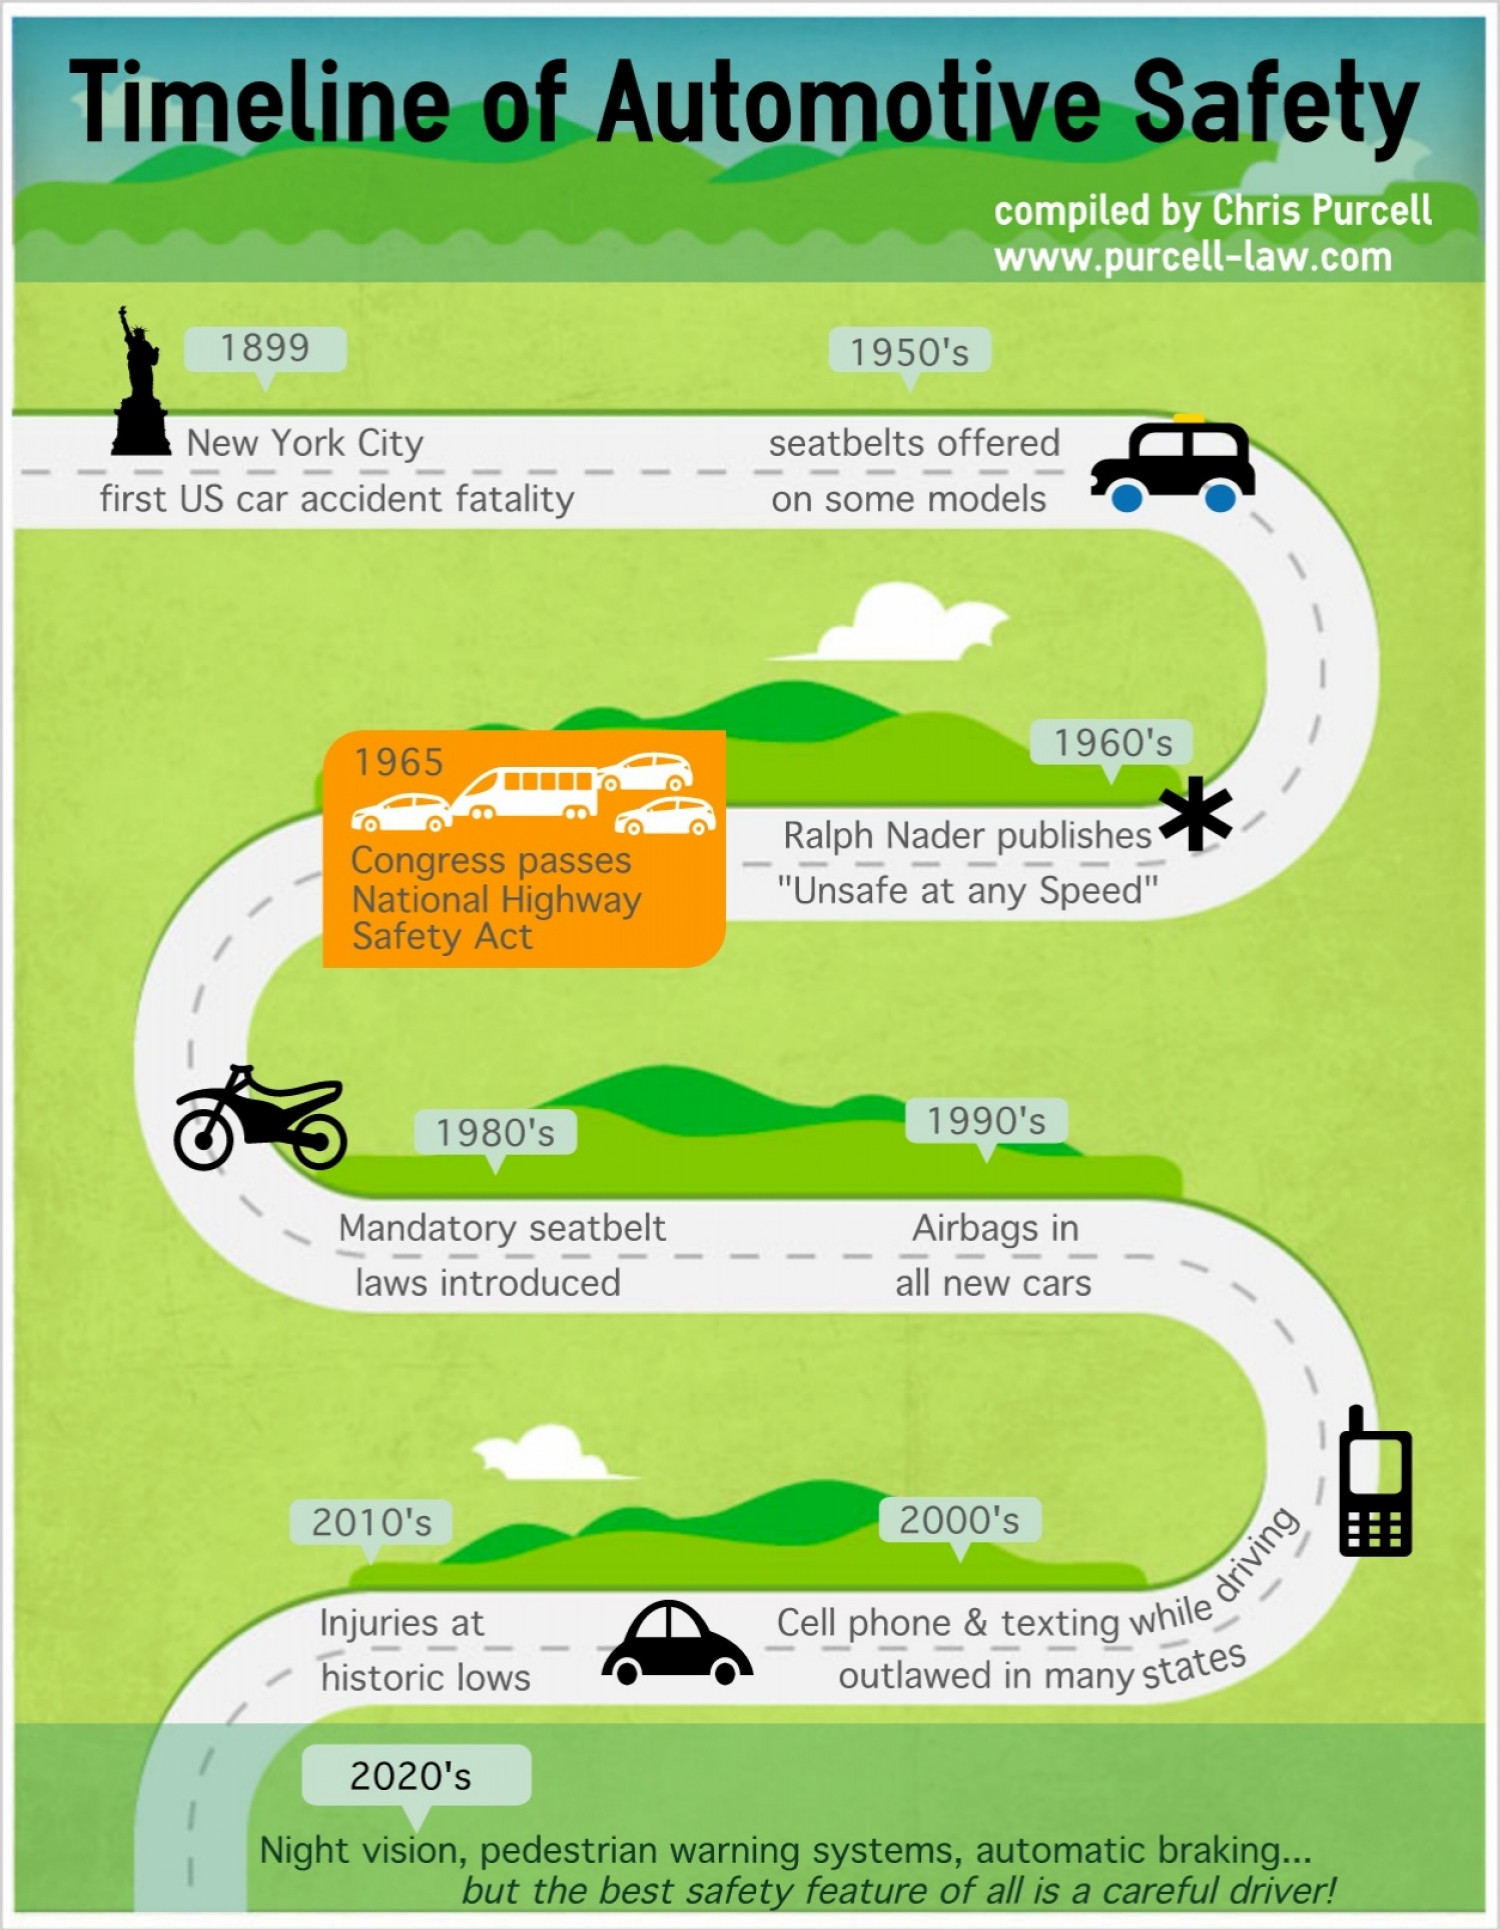 Timline of Automotive Safety Infographic